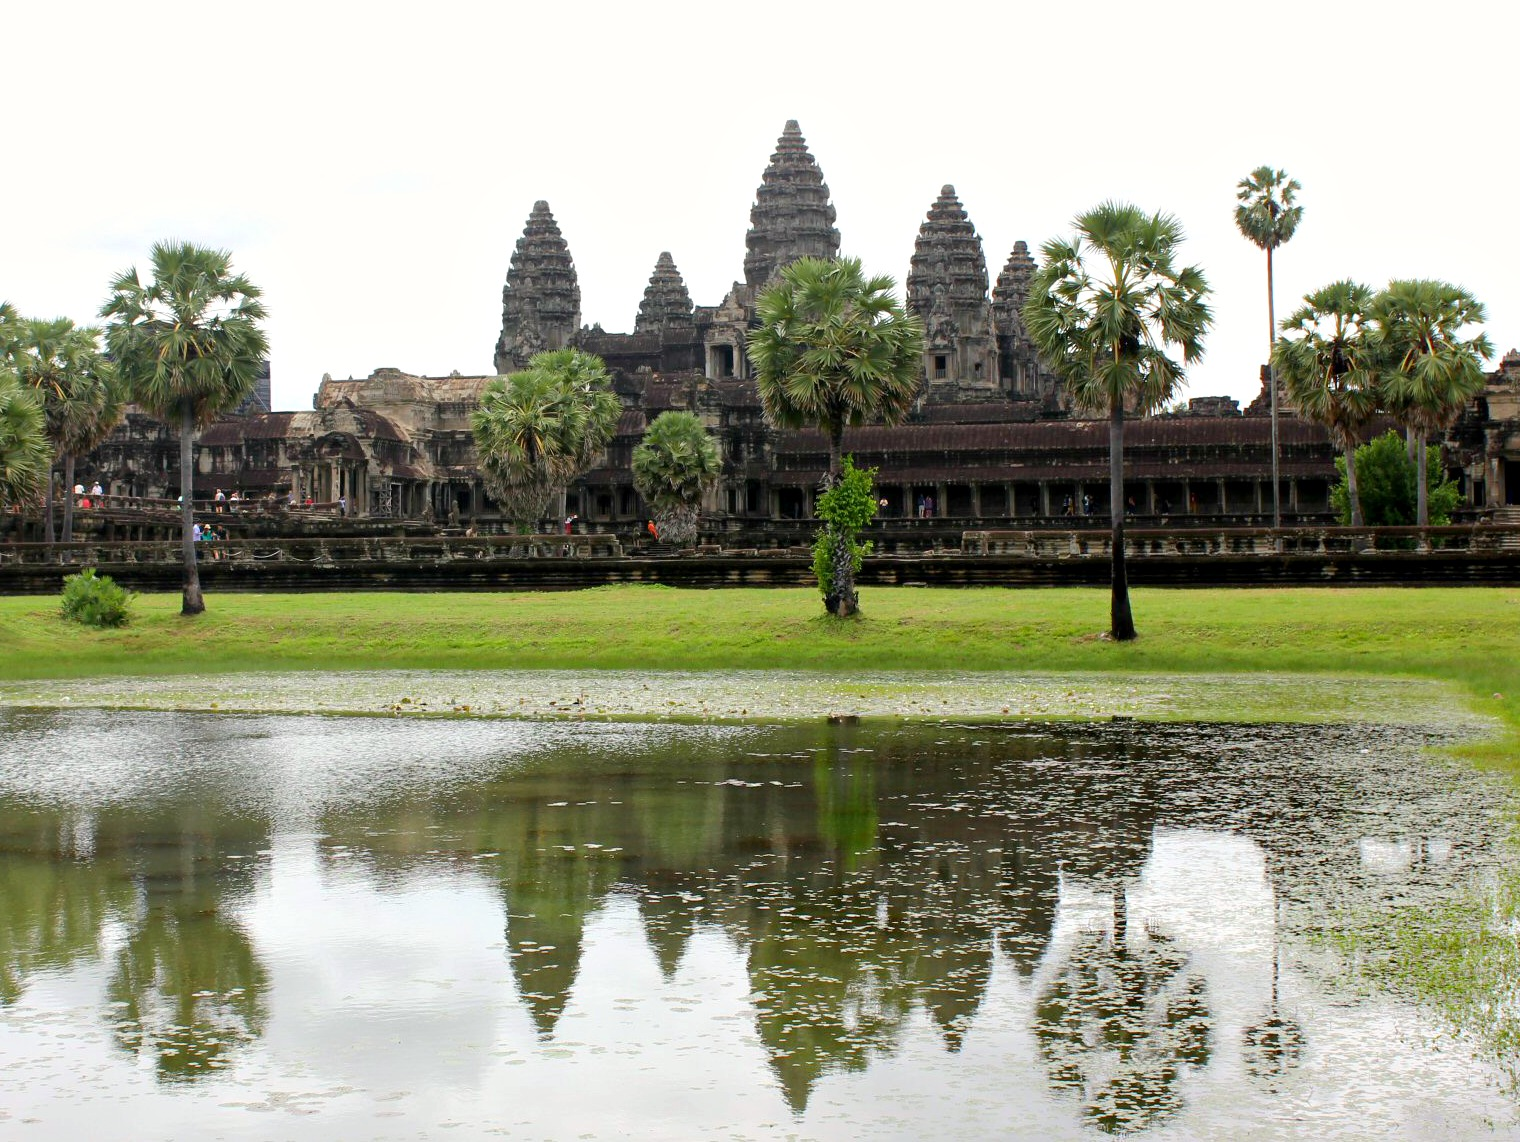 Angkor Wat and its reflection n the water - 12 reasons to visit Cambodia with kids